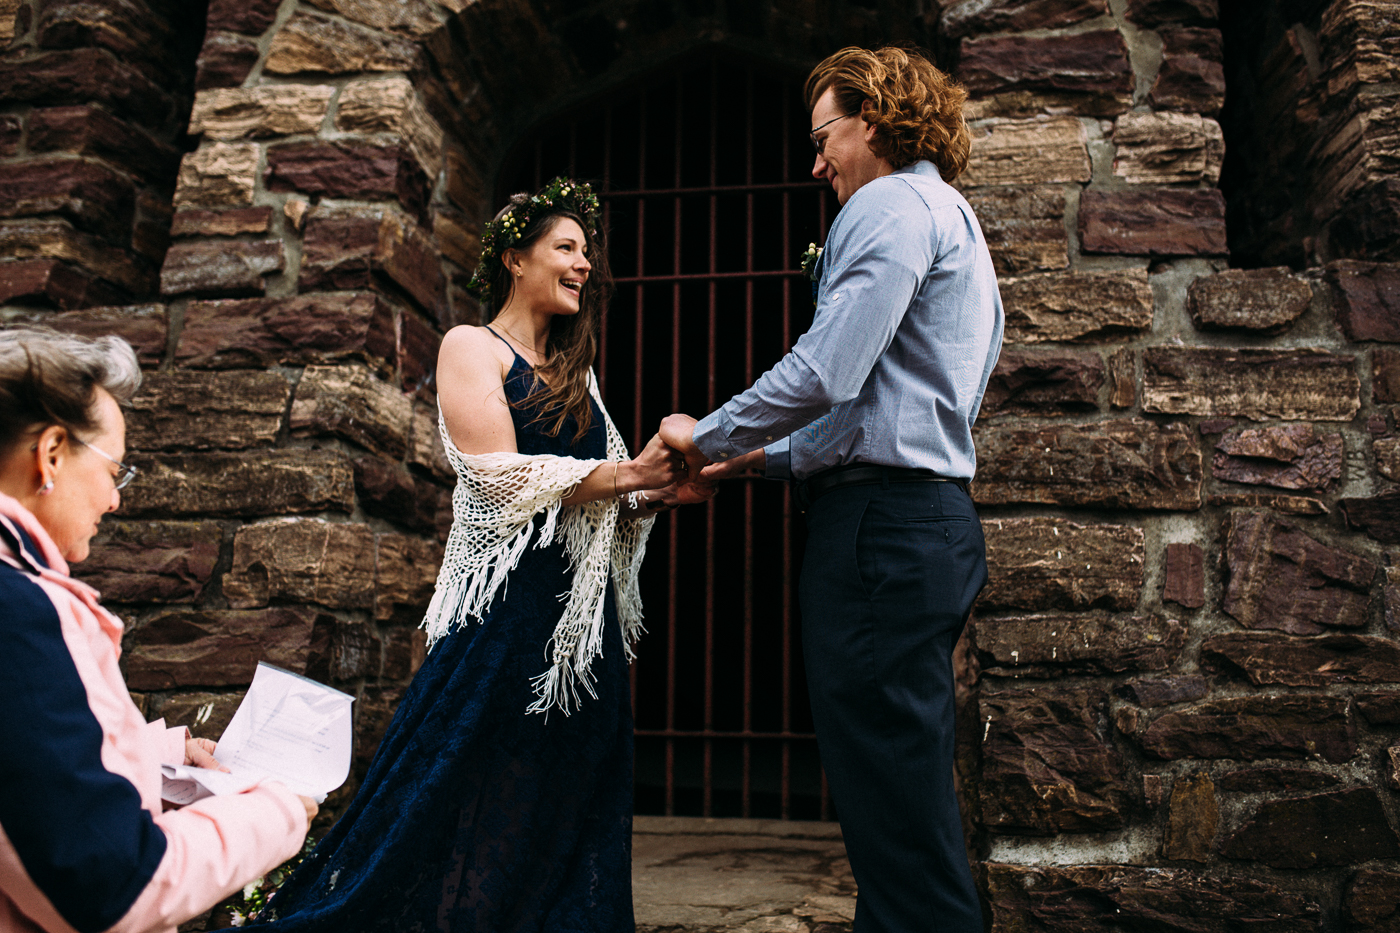 erinwheat photography-jplaurenelopement6633